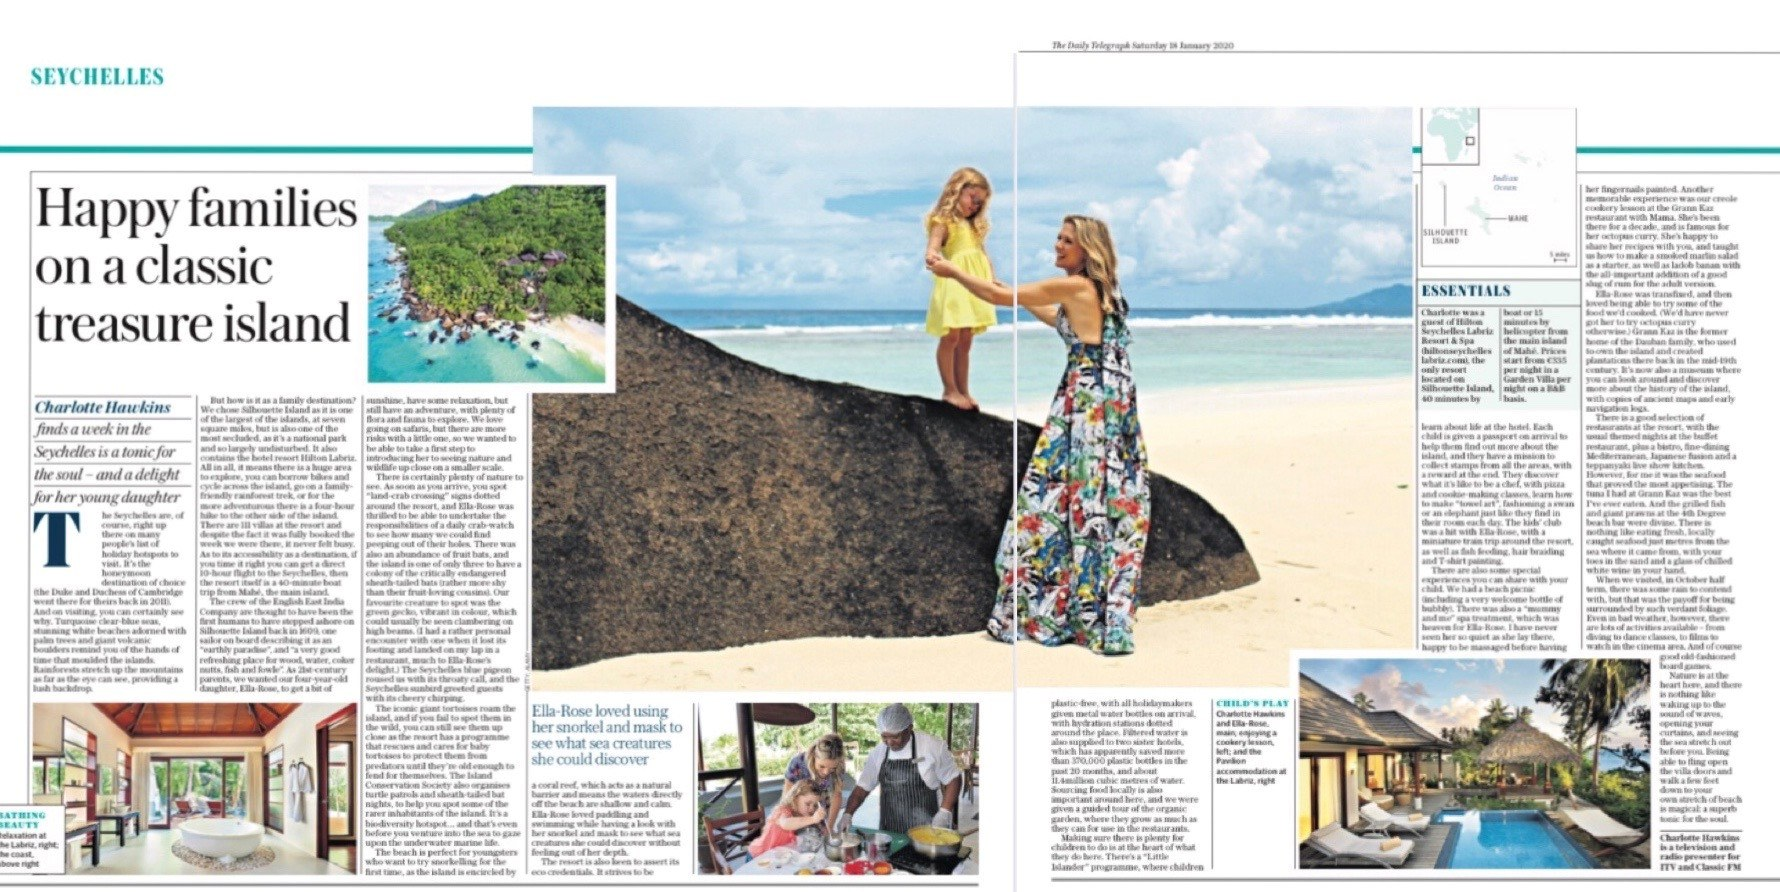 Seychelles-article-cropped.jpg#asset:567